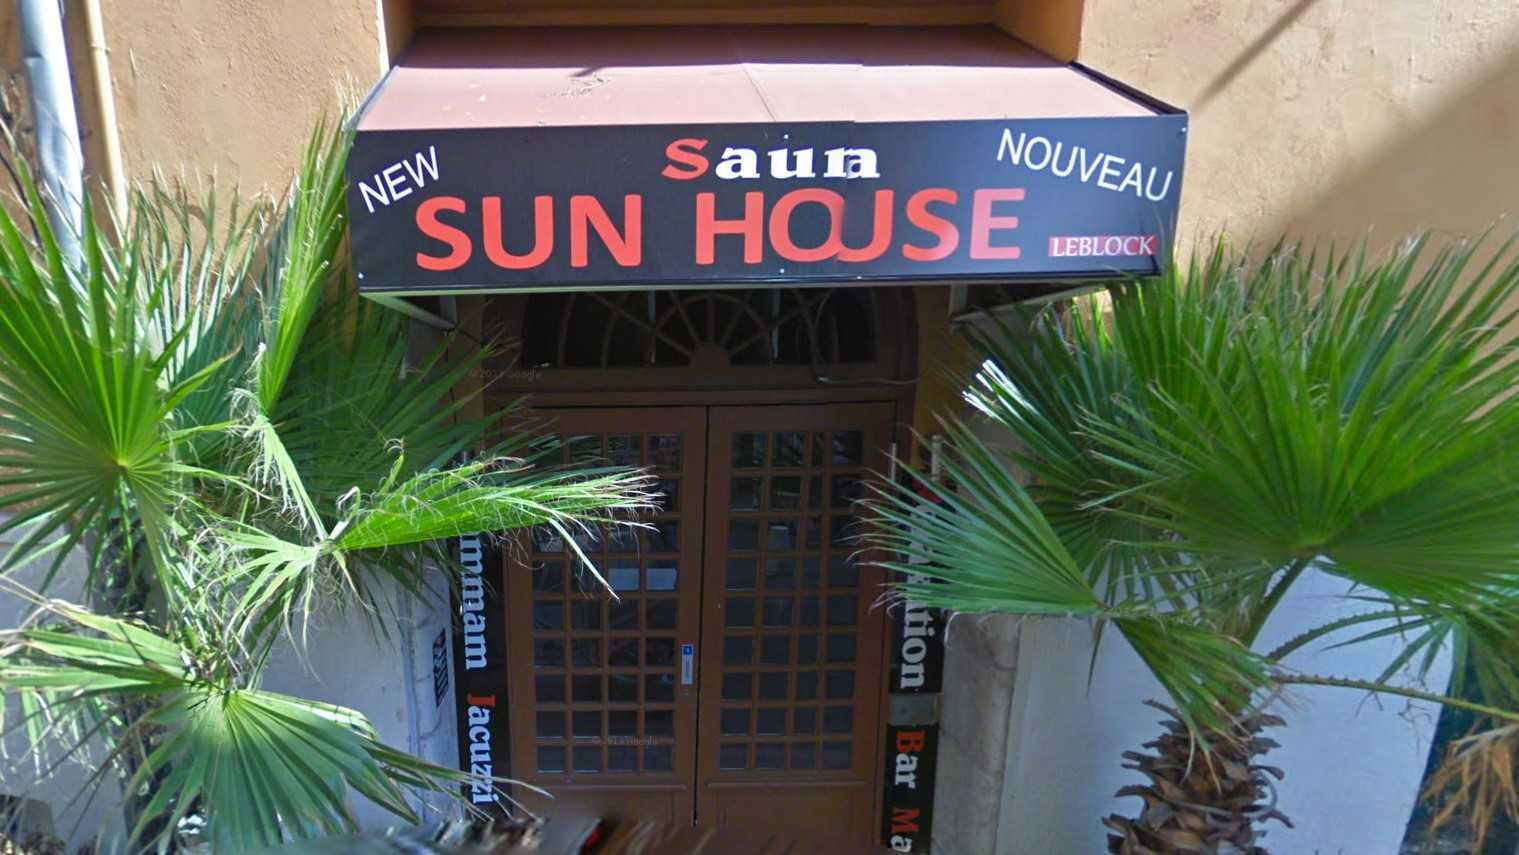 Nice City Life - Sun house Le Block